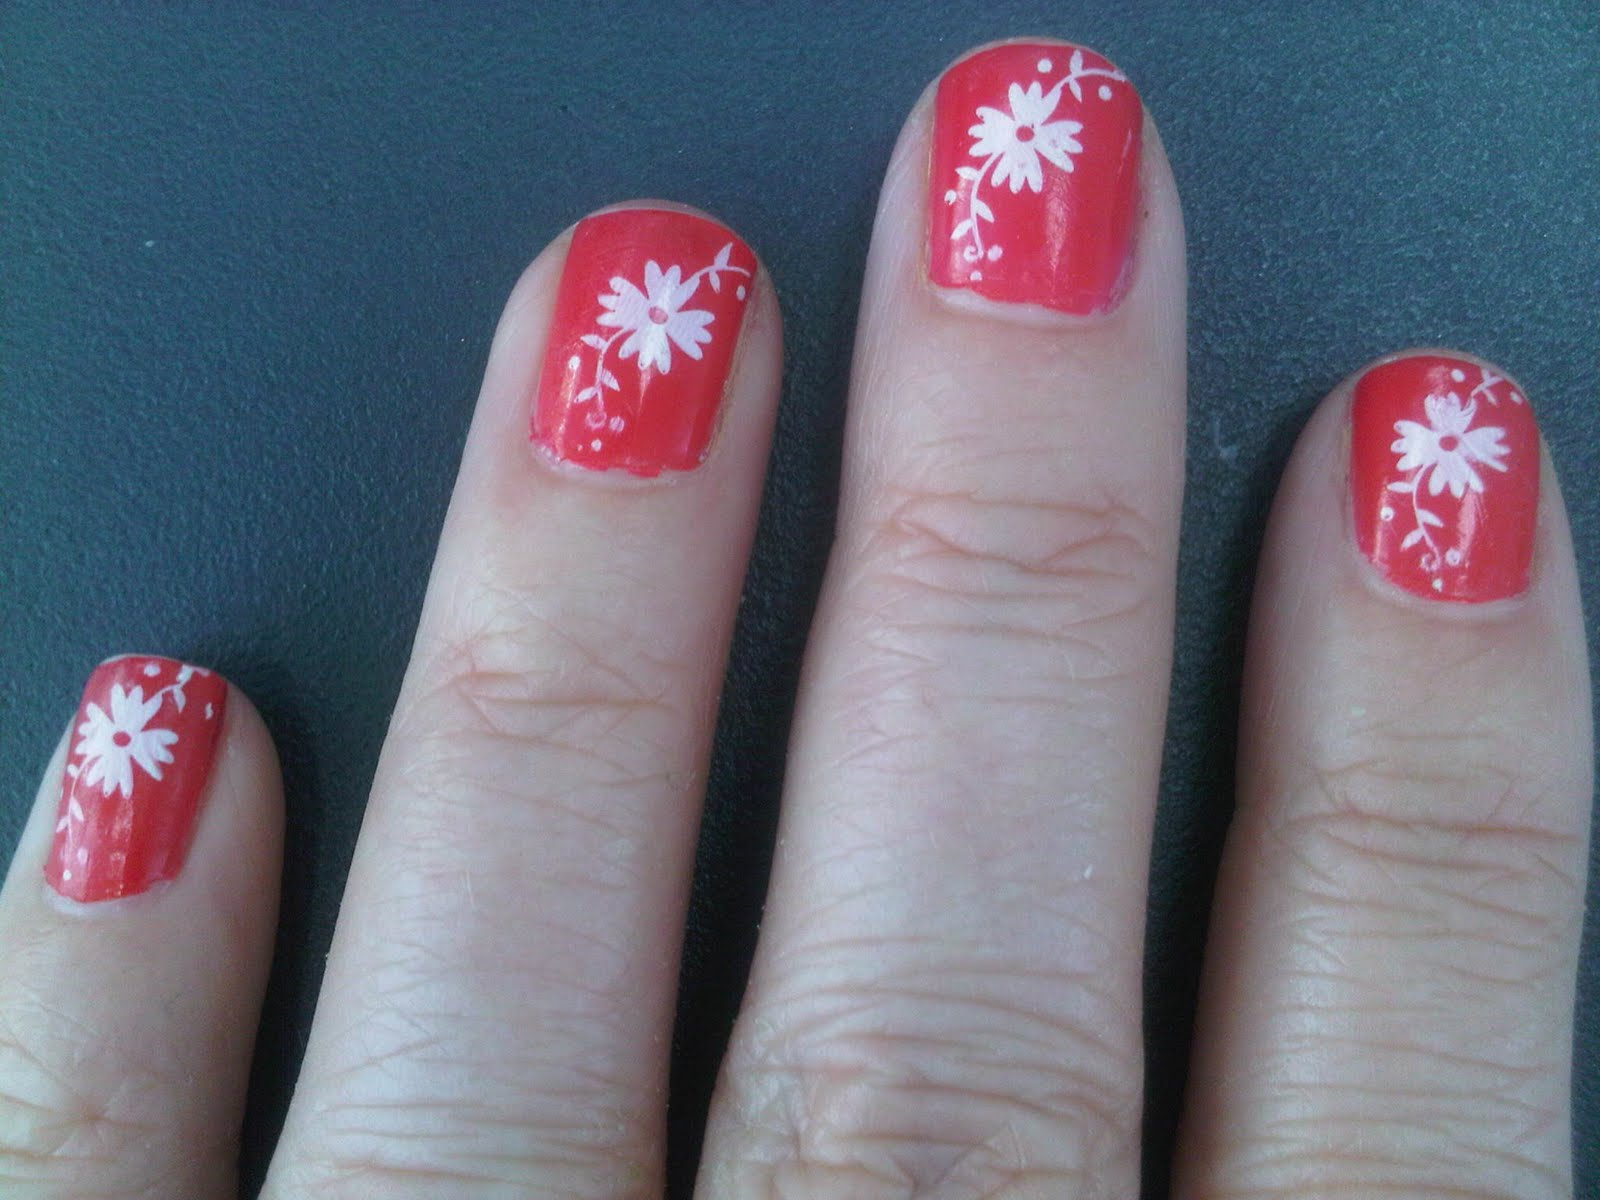 Nail art designs ideas tutorial step by step images christmas nail art designs ideas tutorial step by step images christmas flowers pictures 2015 publicscrutiny Gallery